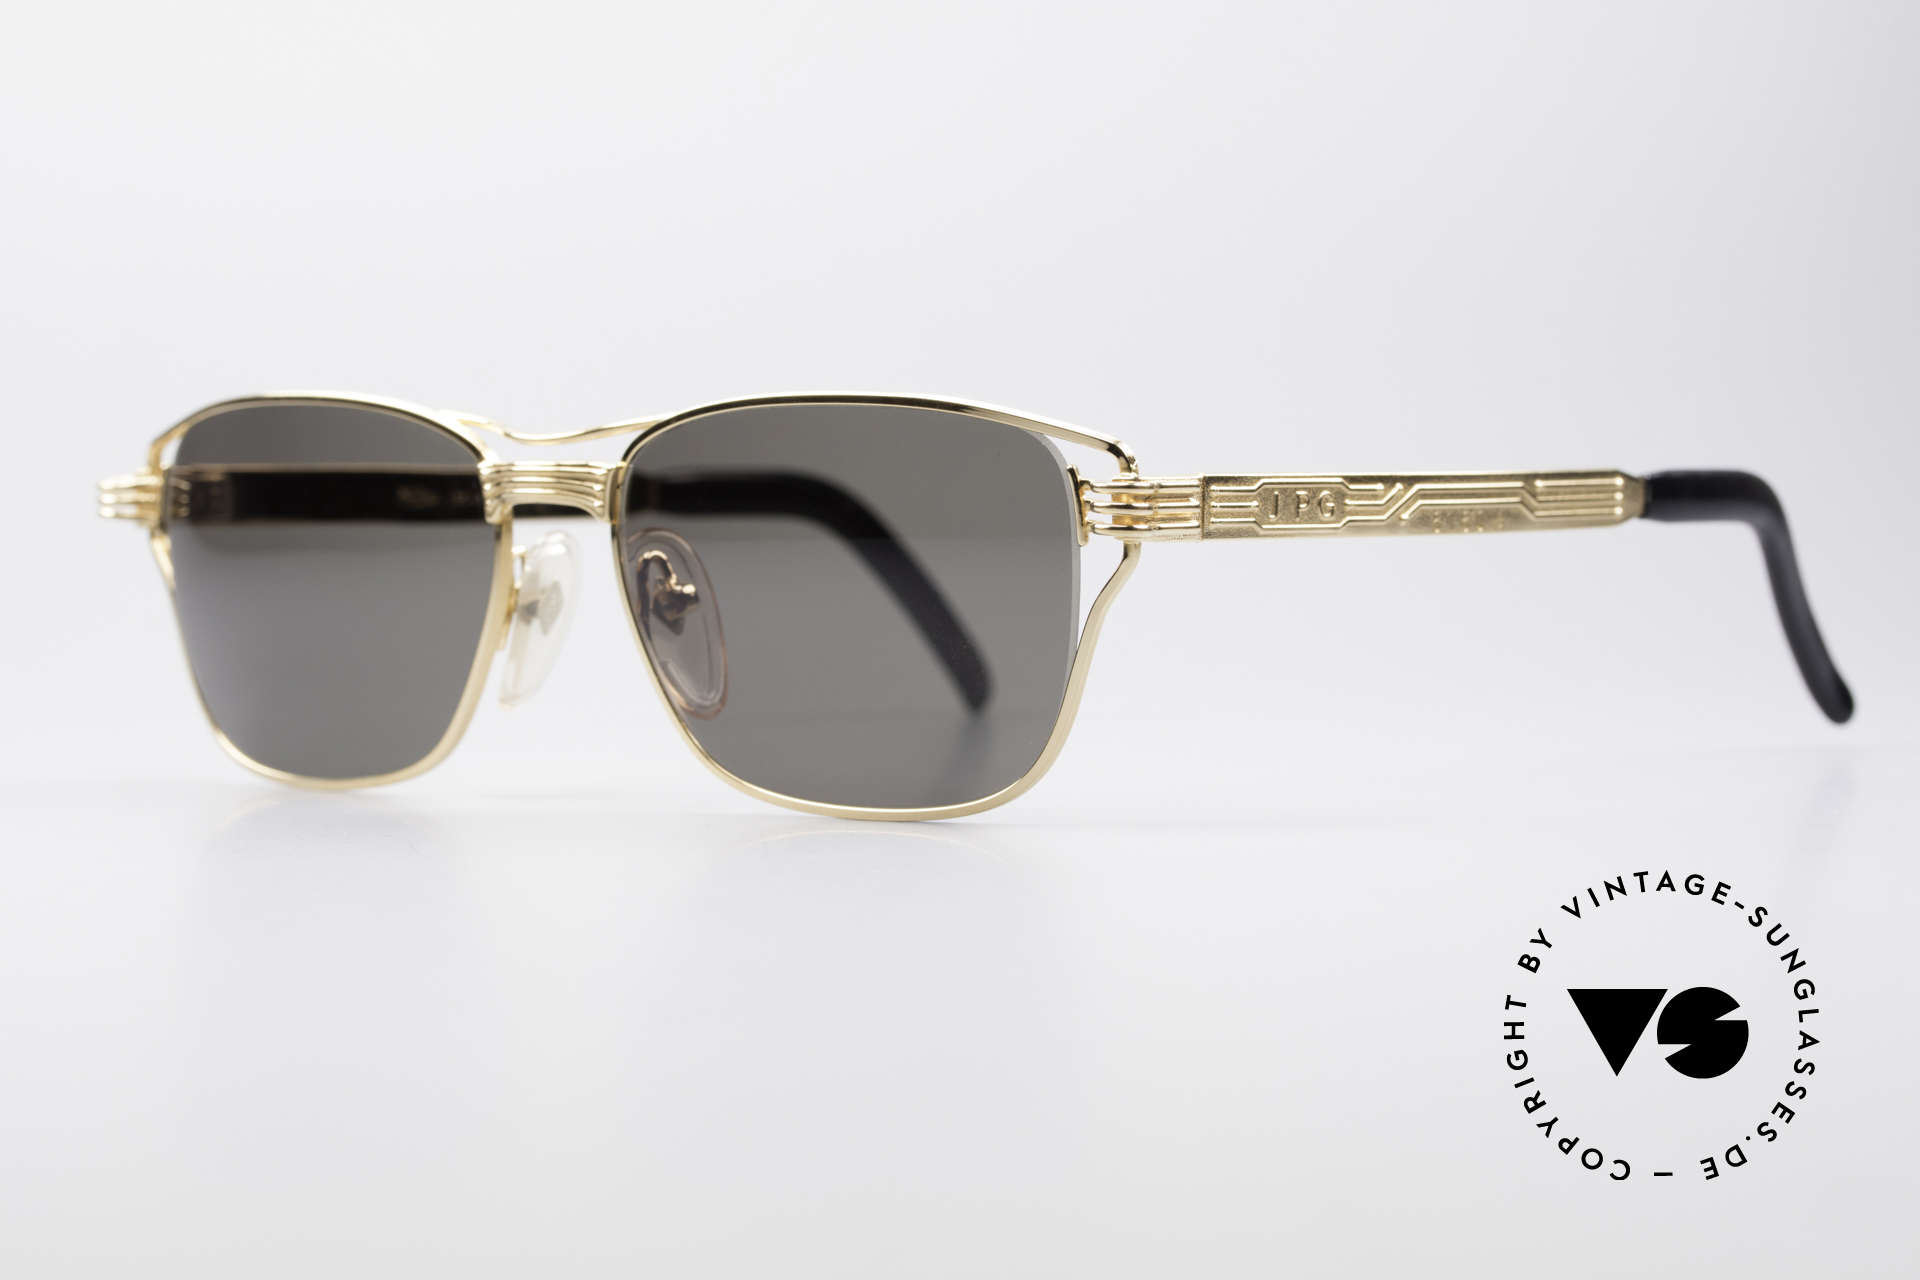 Jean Paul Gaultier 56-4173 Square Designer Sunglasses, interesting metal frame with many costly details, Made for Men